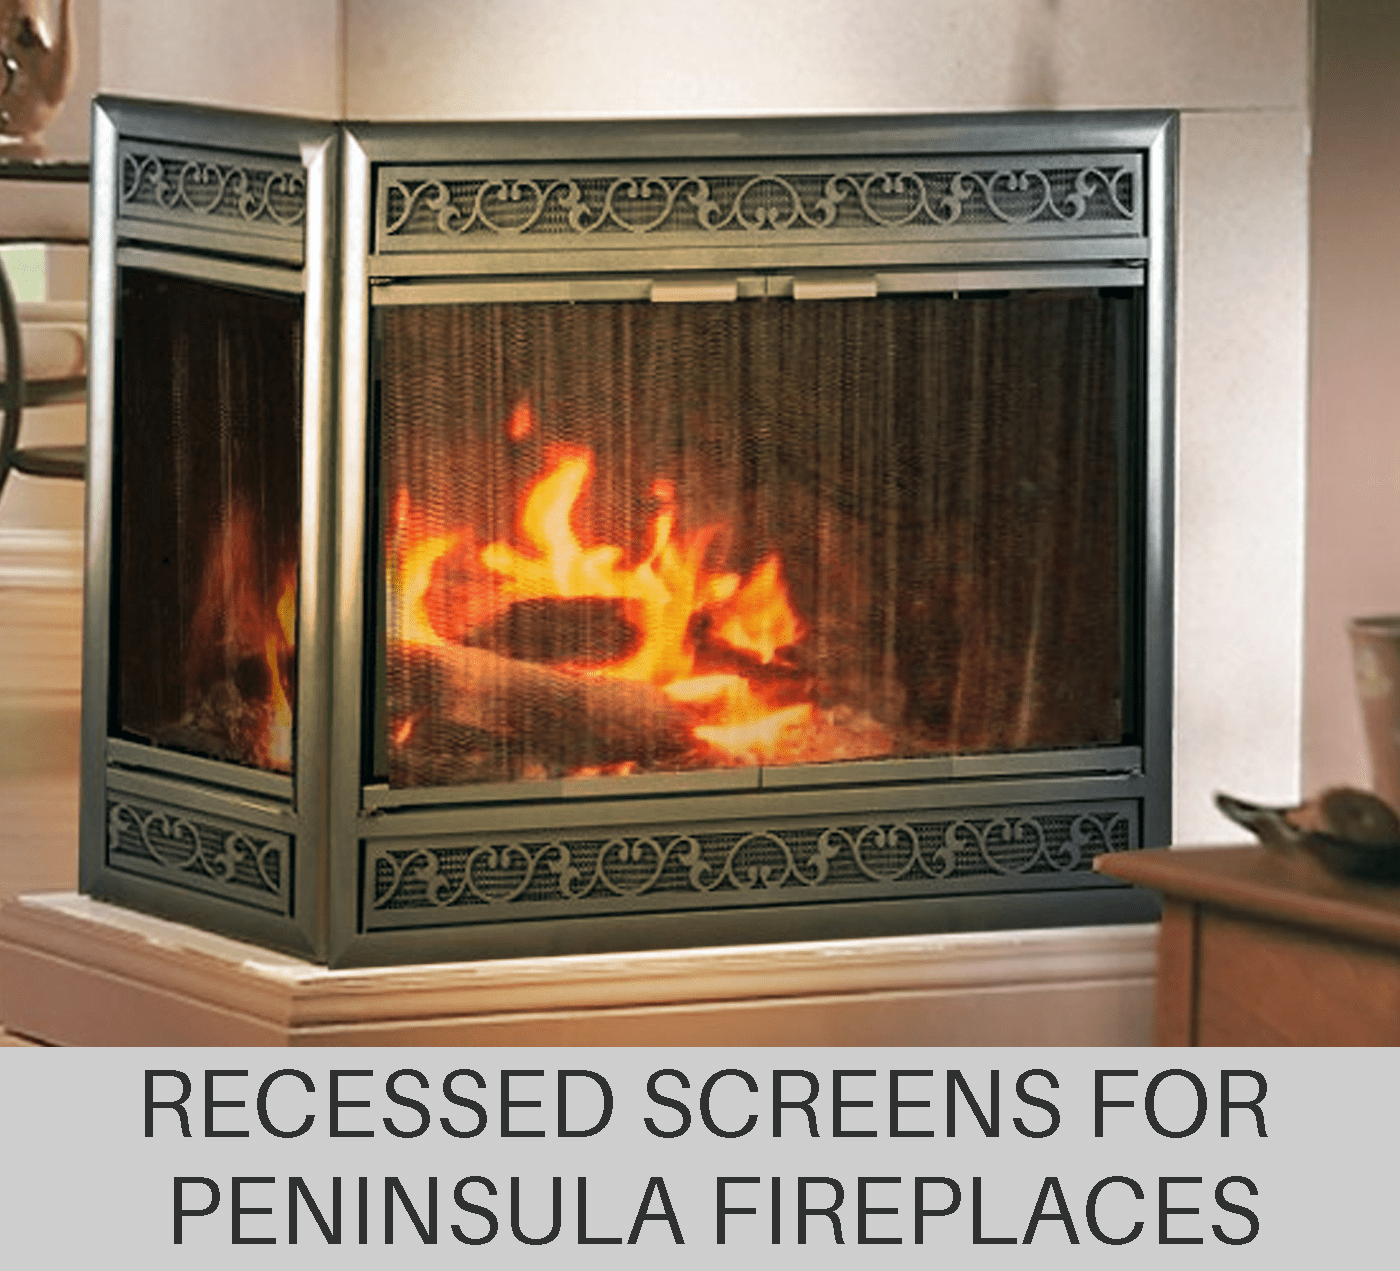 Recessed Screens For Peninsula Frieplaces